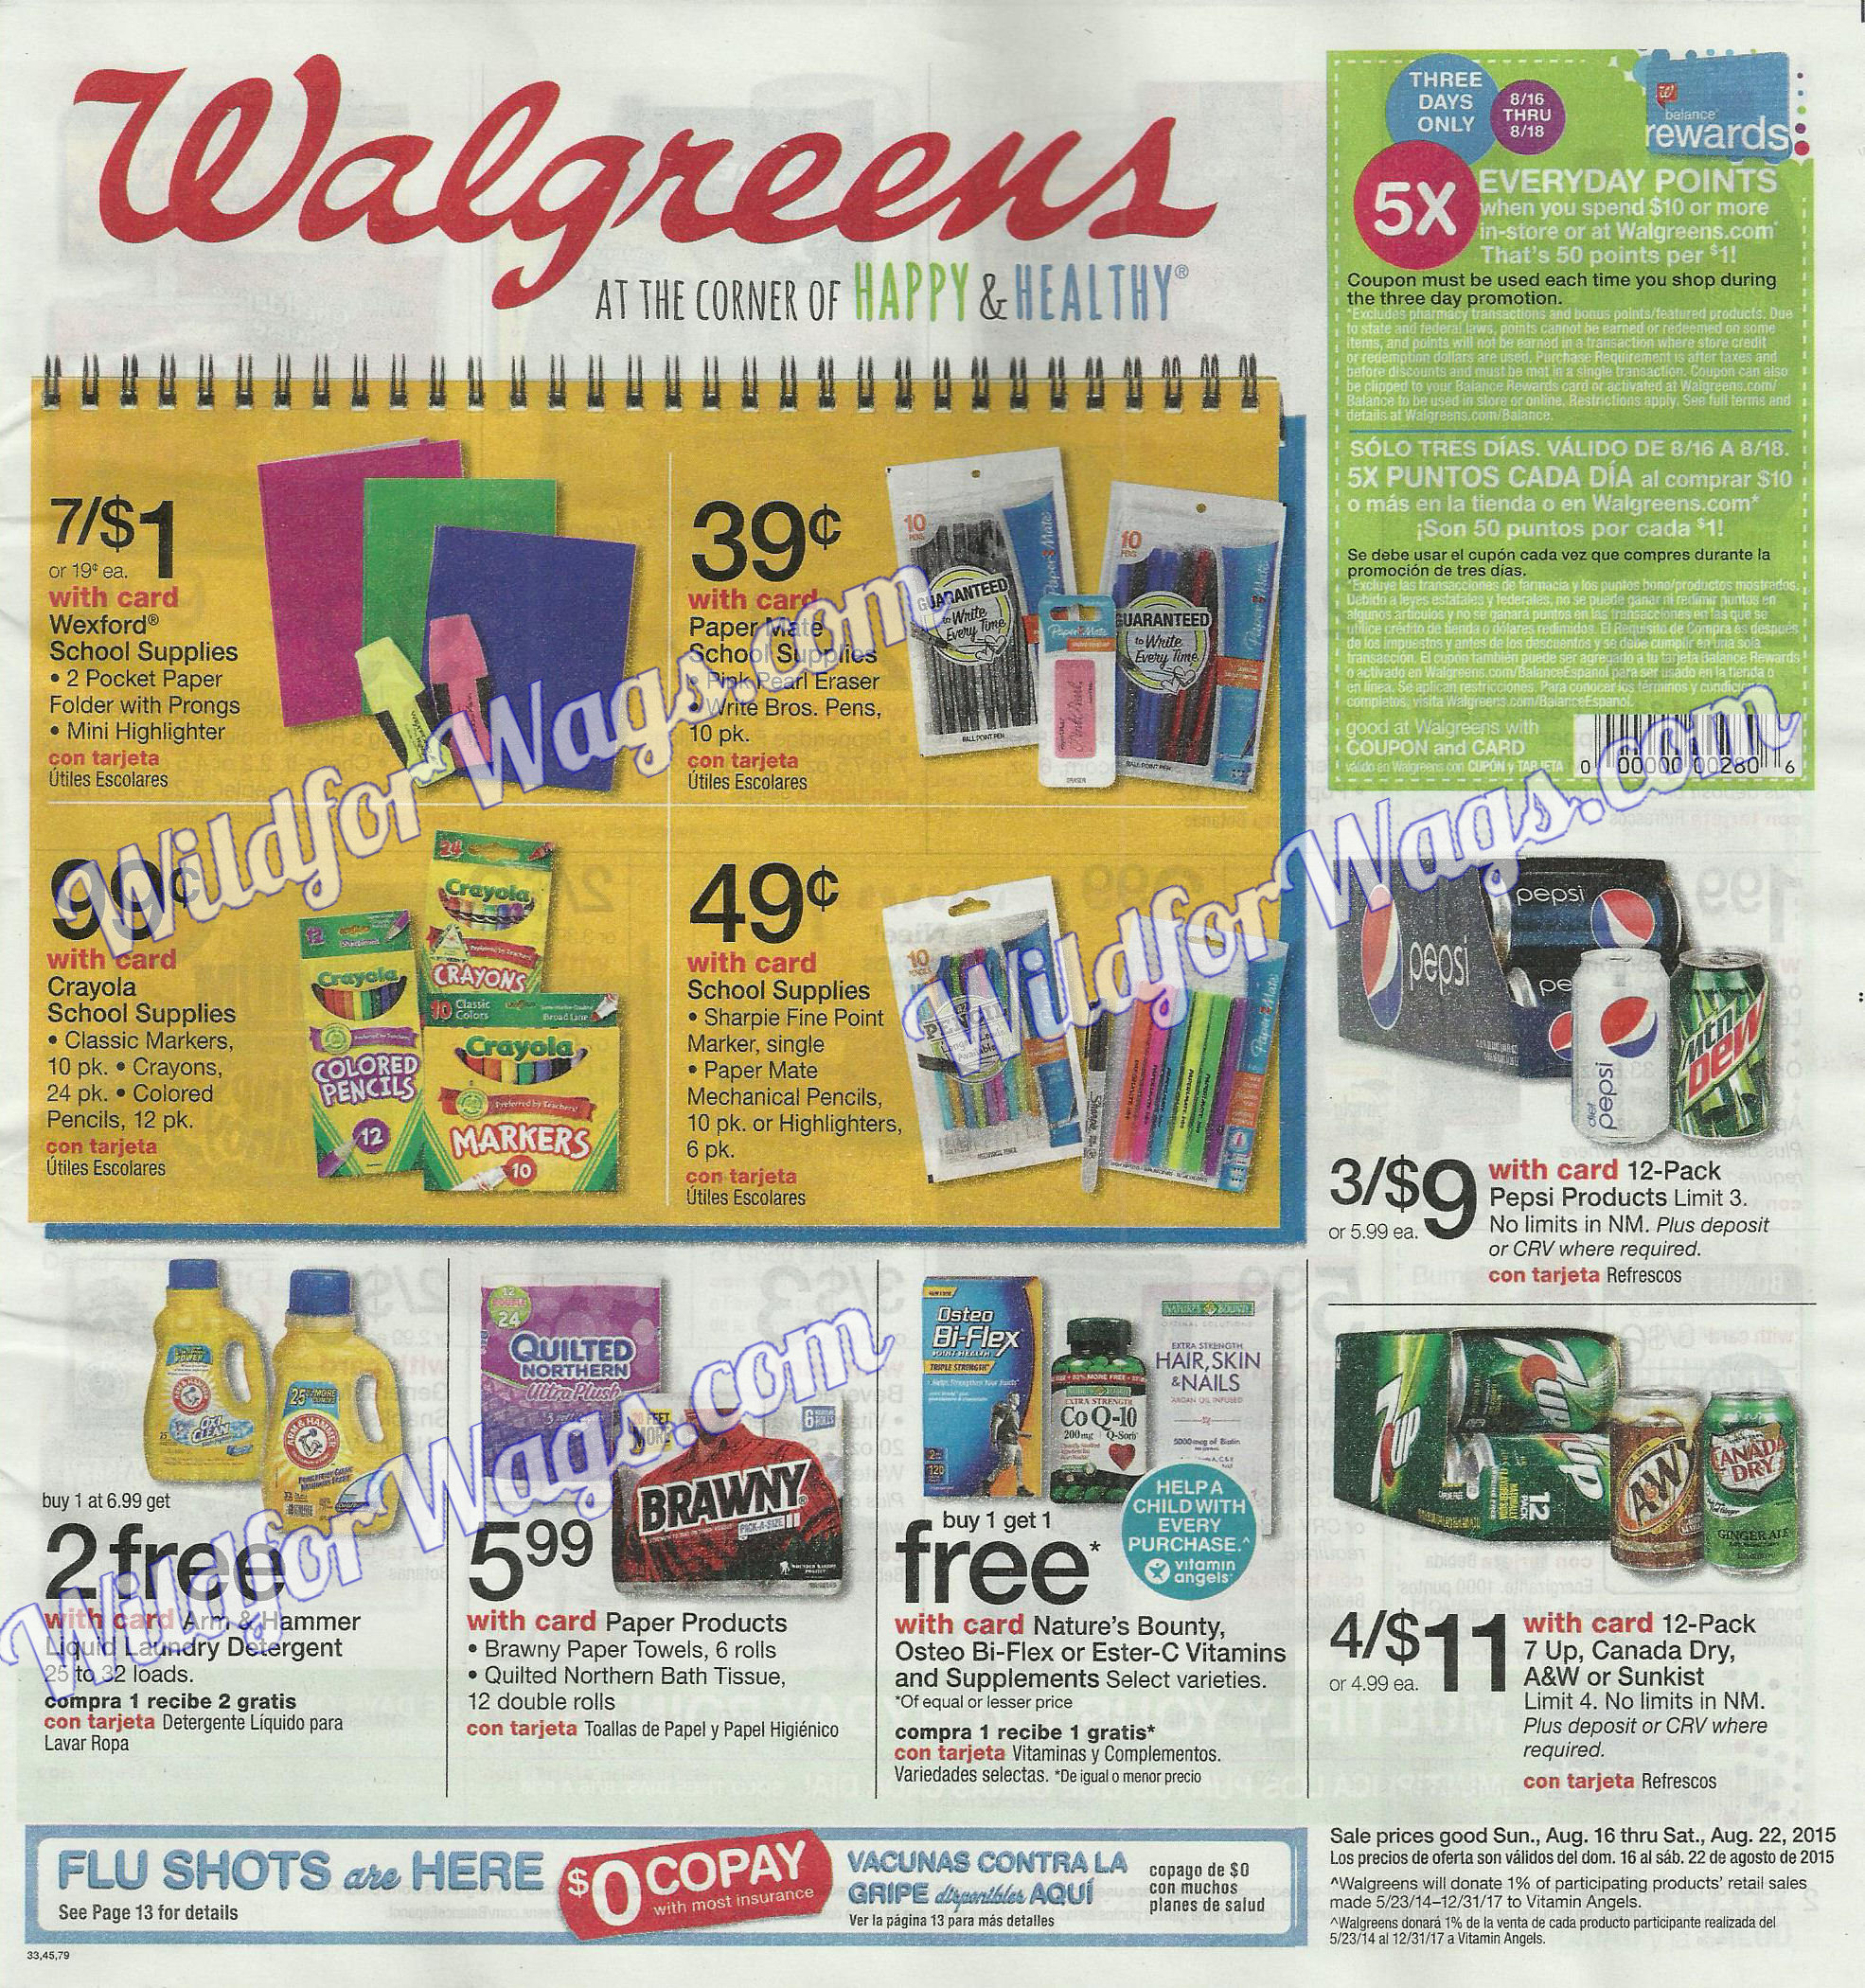 FAQ & Getting Started Shopping at Walgreens. If you are new to shopping at Walgreens you'll want to familiarize yourself with their Register Reward program, the Balance Rewards program, Walgreens coupons and their coupon policy. You can see the Walgreens Coupon Policy HERE.. Print it out and keep a copy in your coupon binder or coupon clutch.